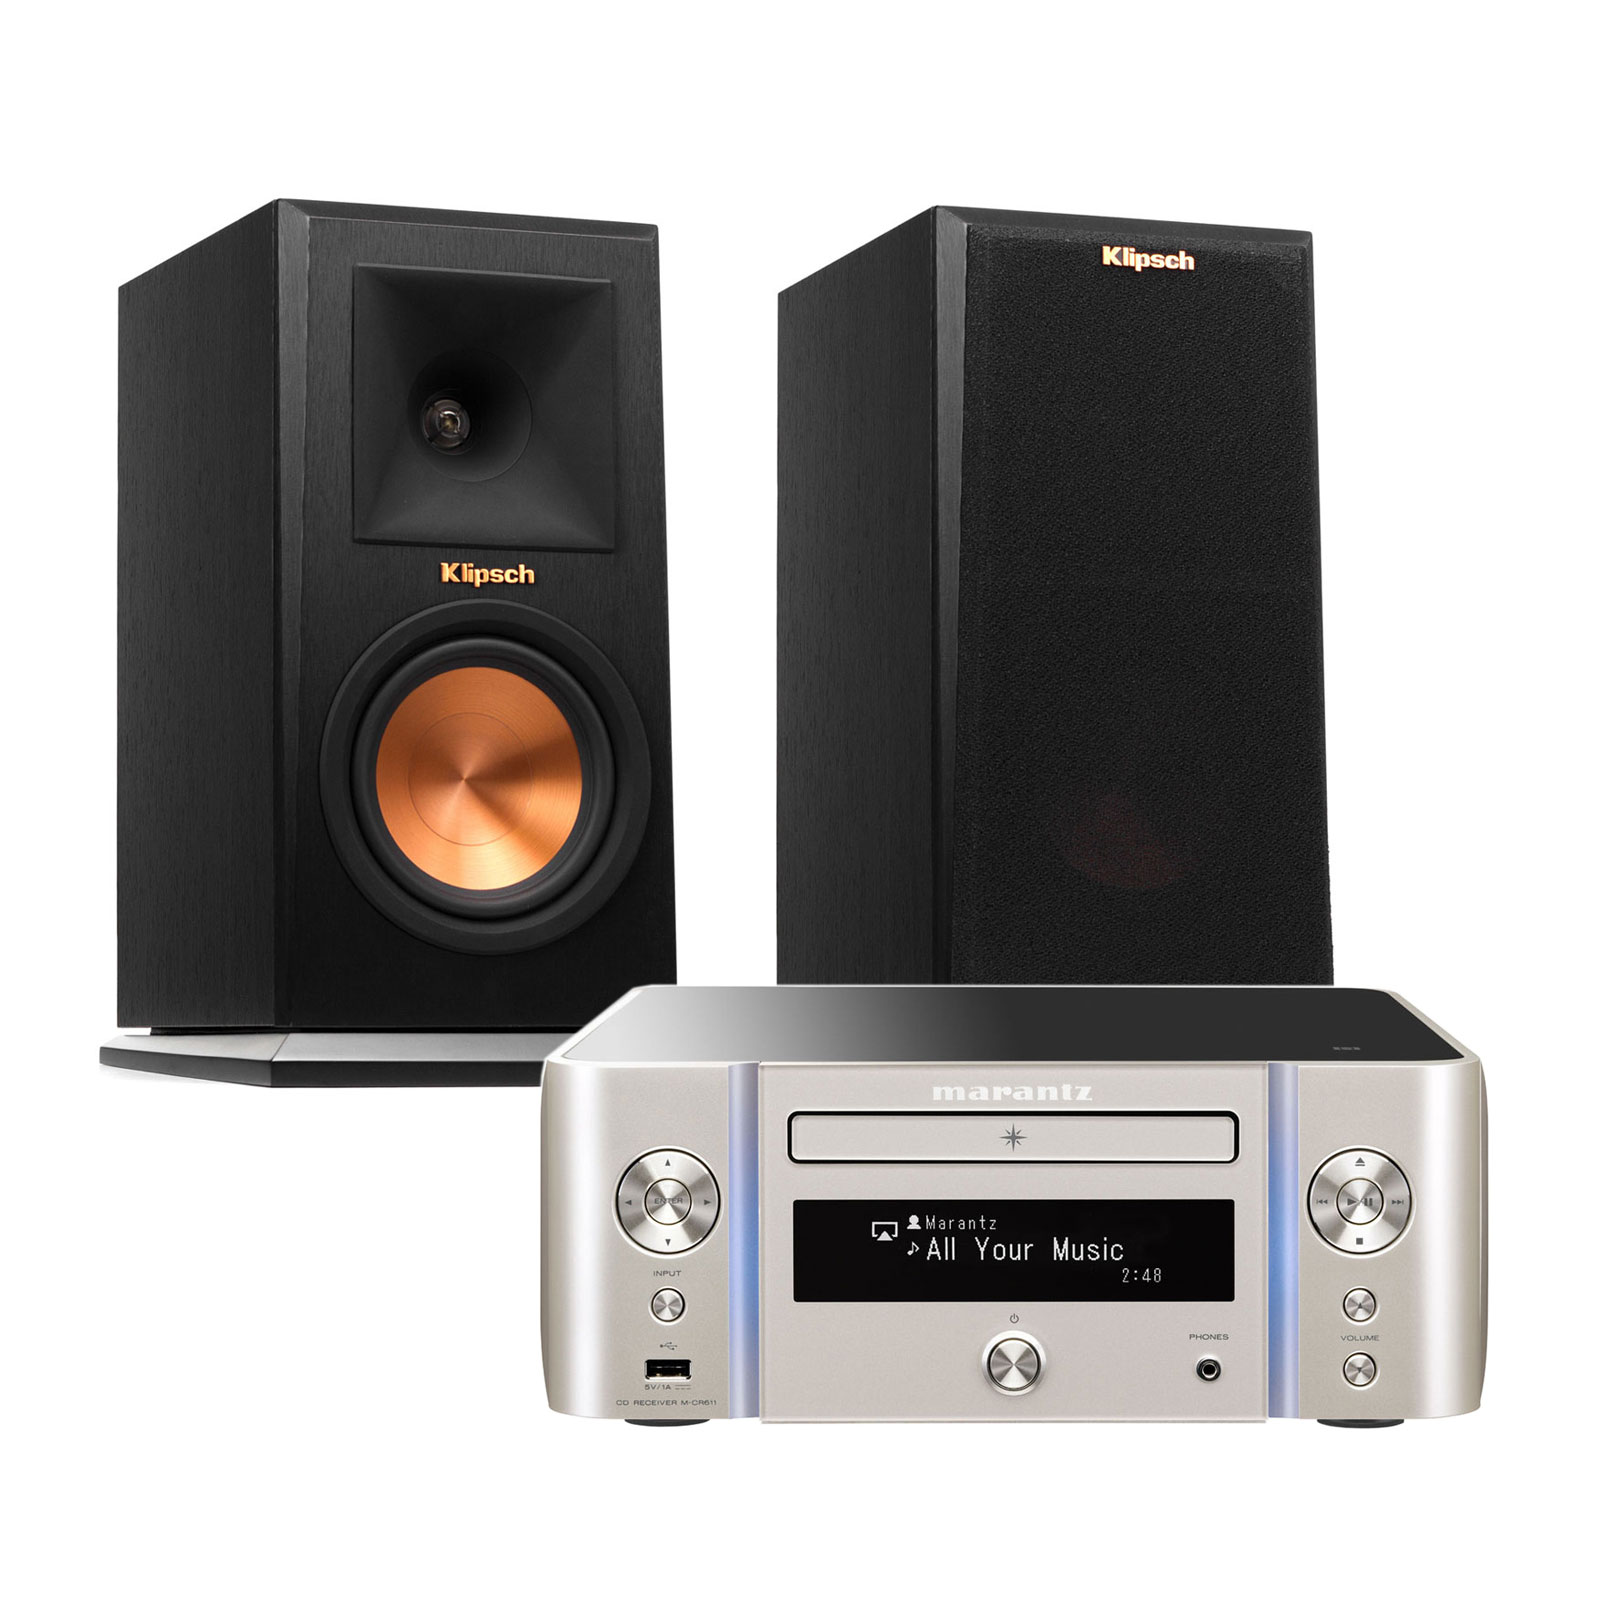 marantz melody stream m cr611 argent or klipsch rp 150m cha ne hifi marantz sur. Black Bedroom Furniture Sets. Home Design Ideas